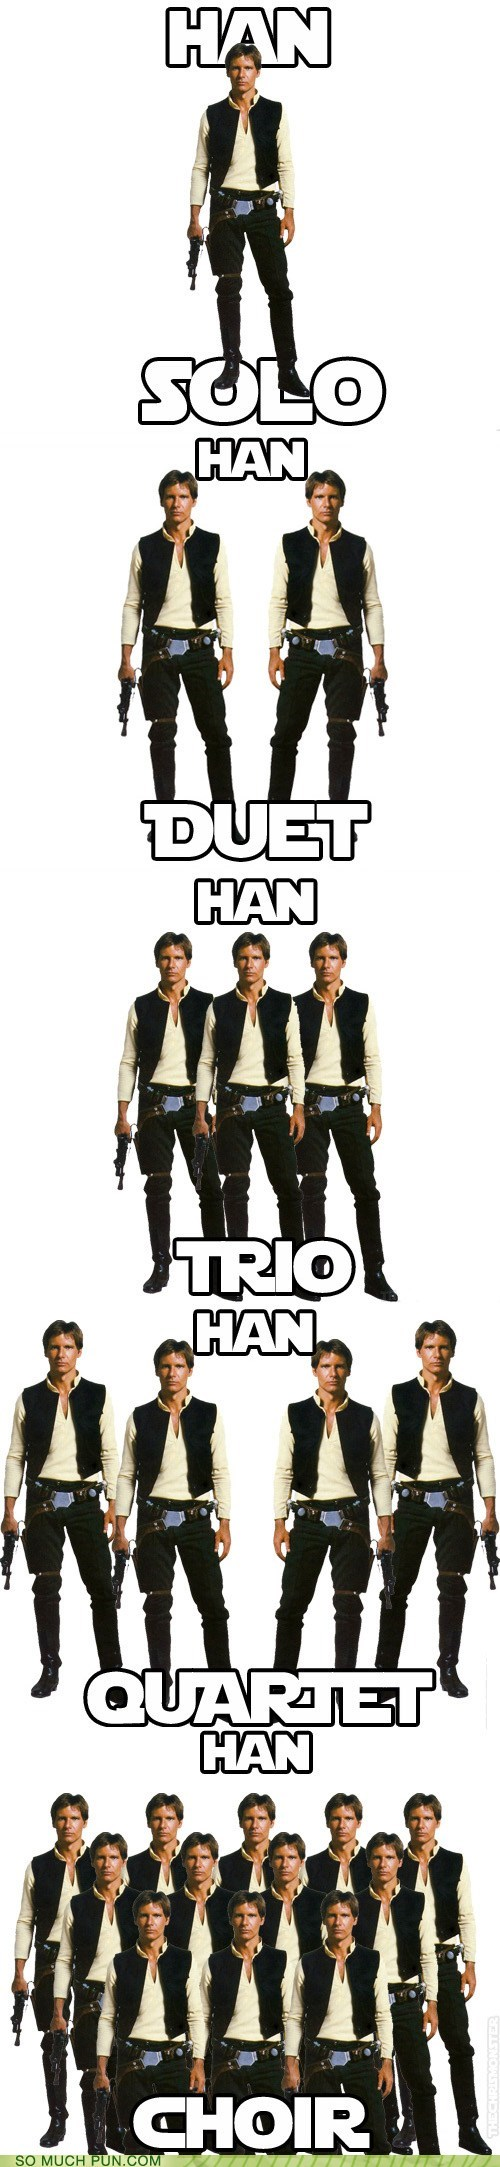 choir double meaning duet Hall of Fame Han Solo literalism quartet star wars surname trio - 5817268224